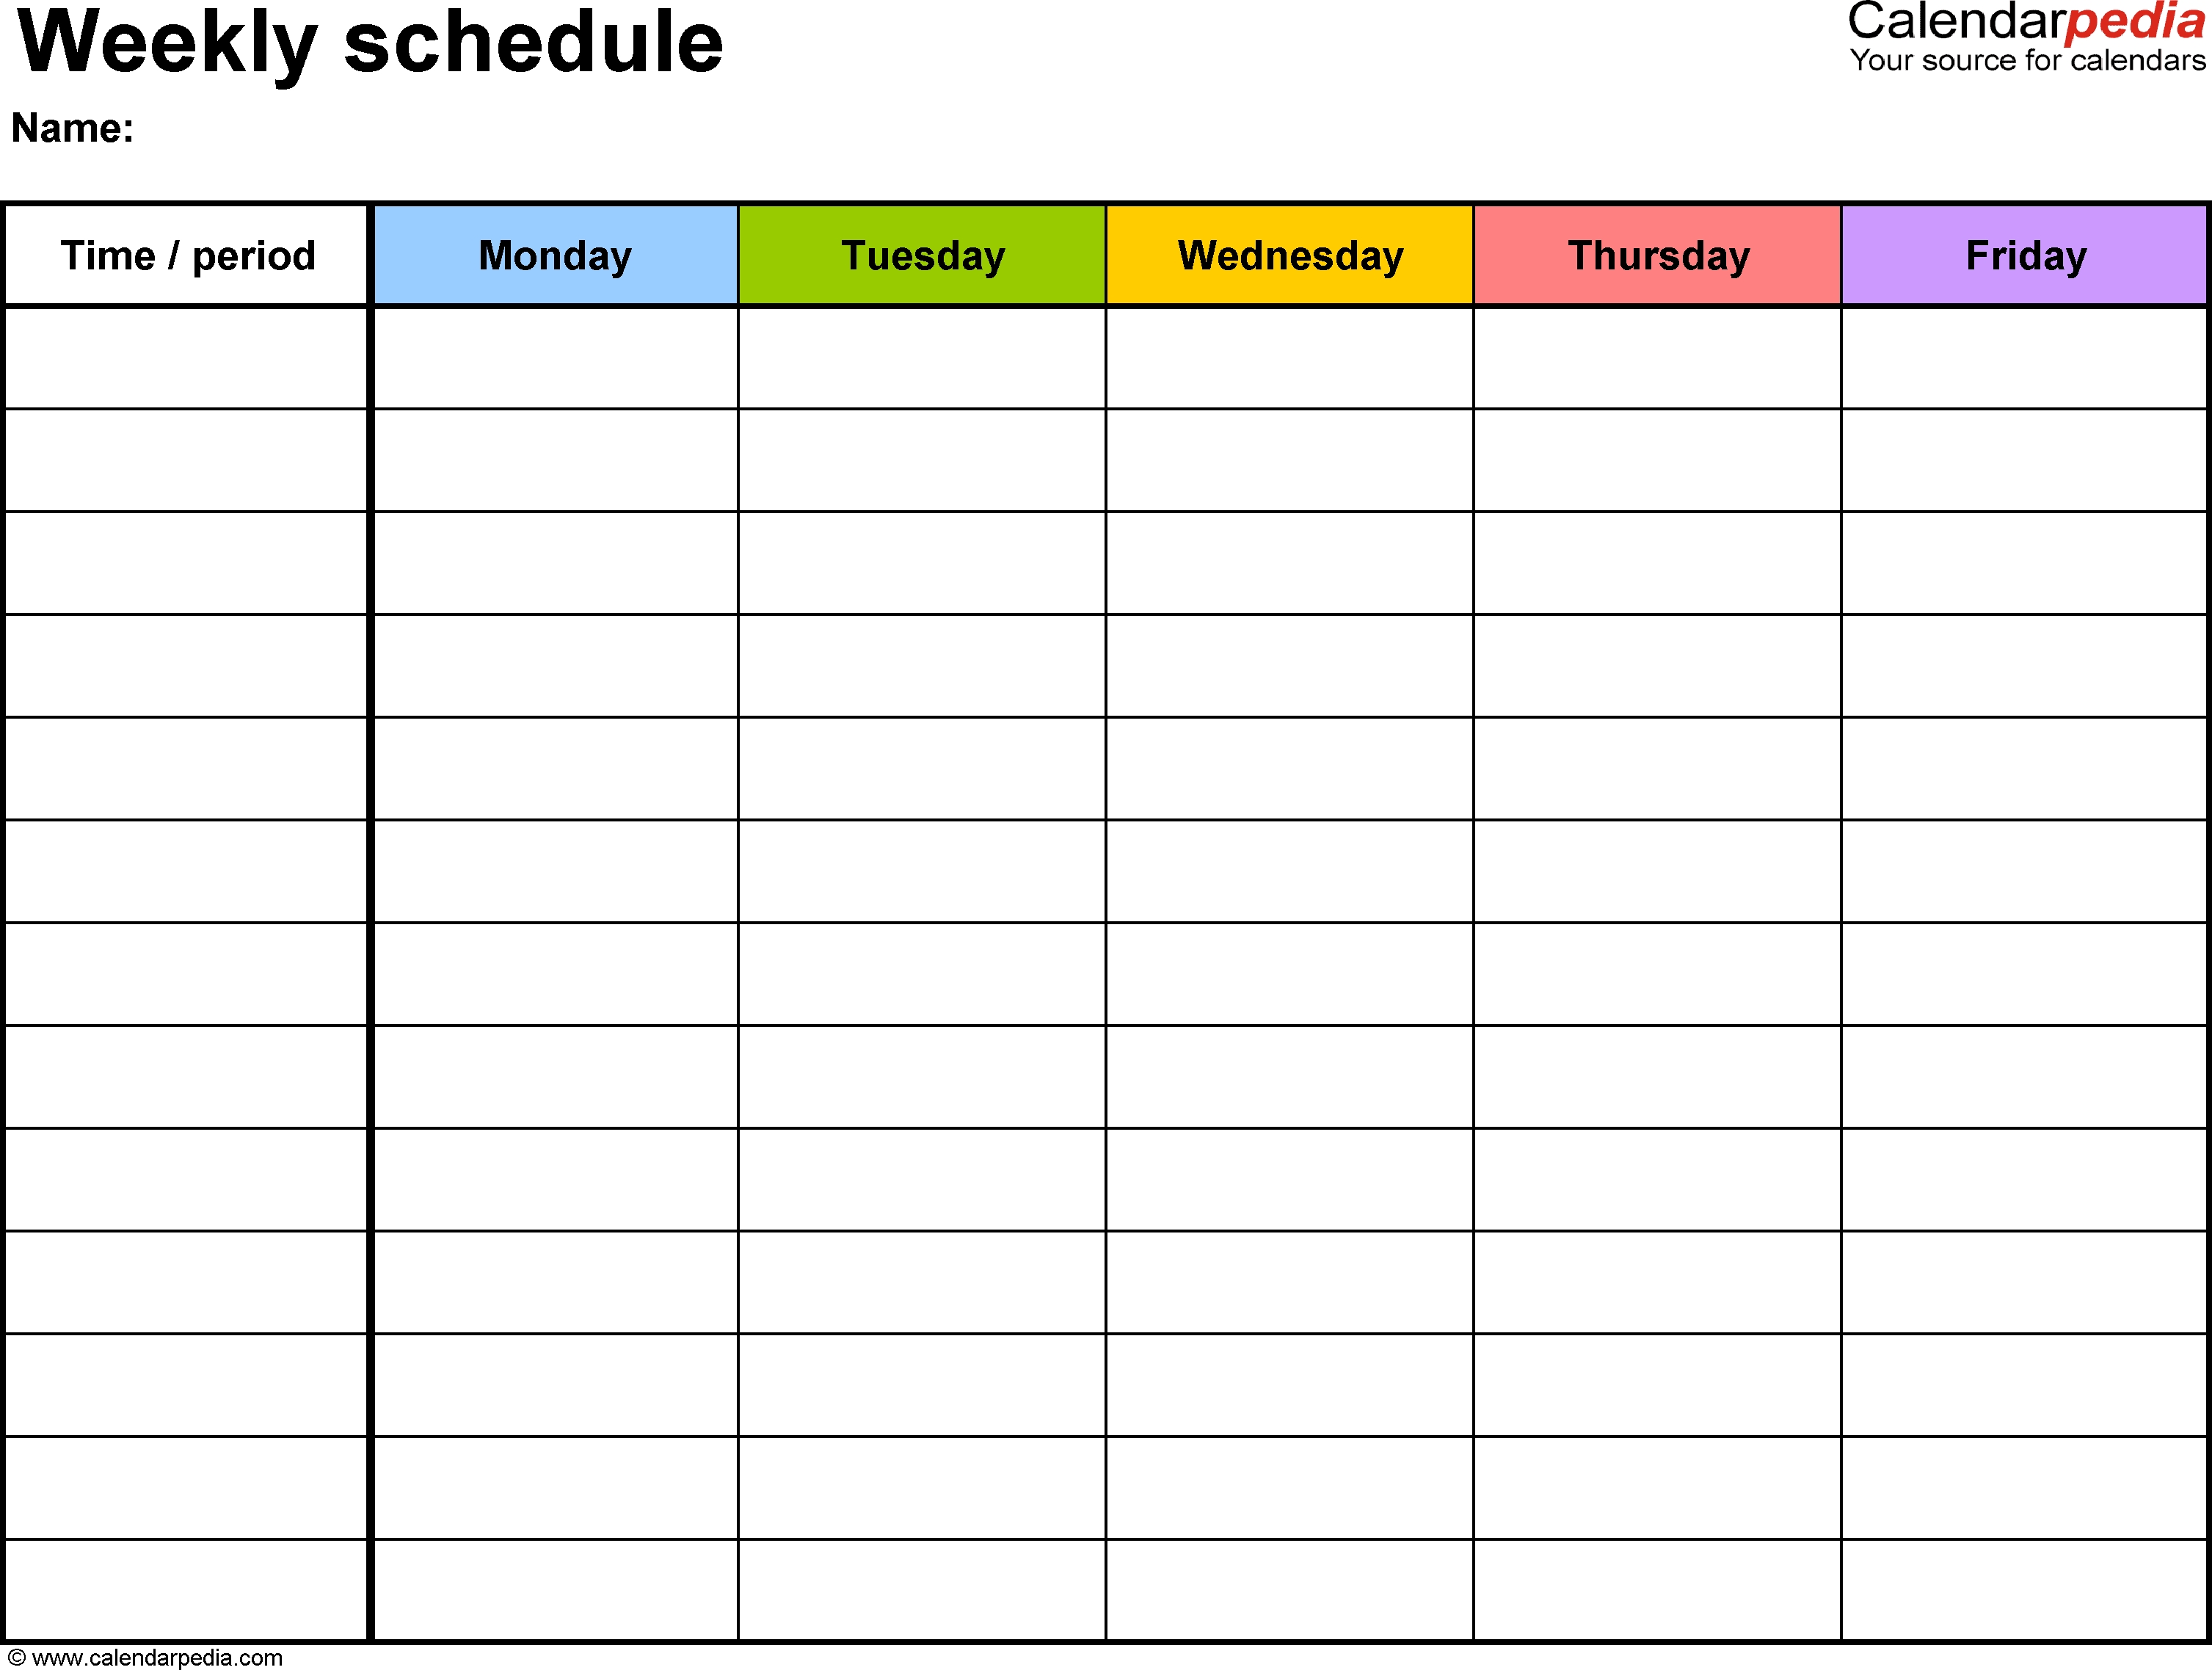 Weekly Schedule Template For Word Version 1: Landscape, 1-Monday Through Friday Schedule Template